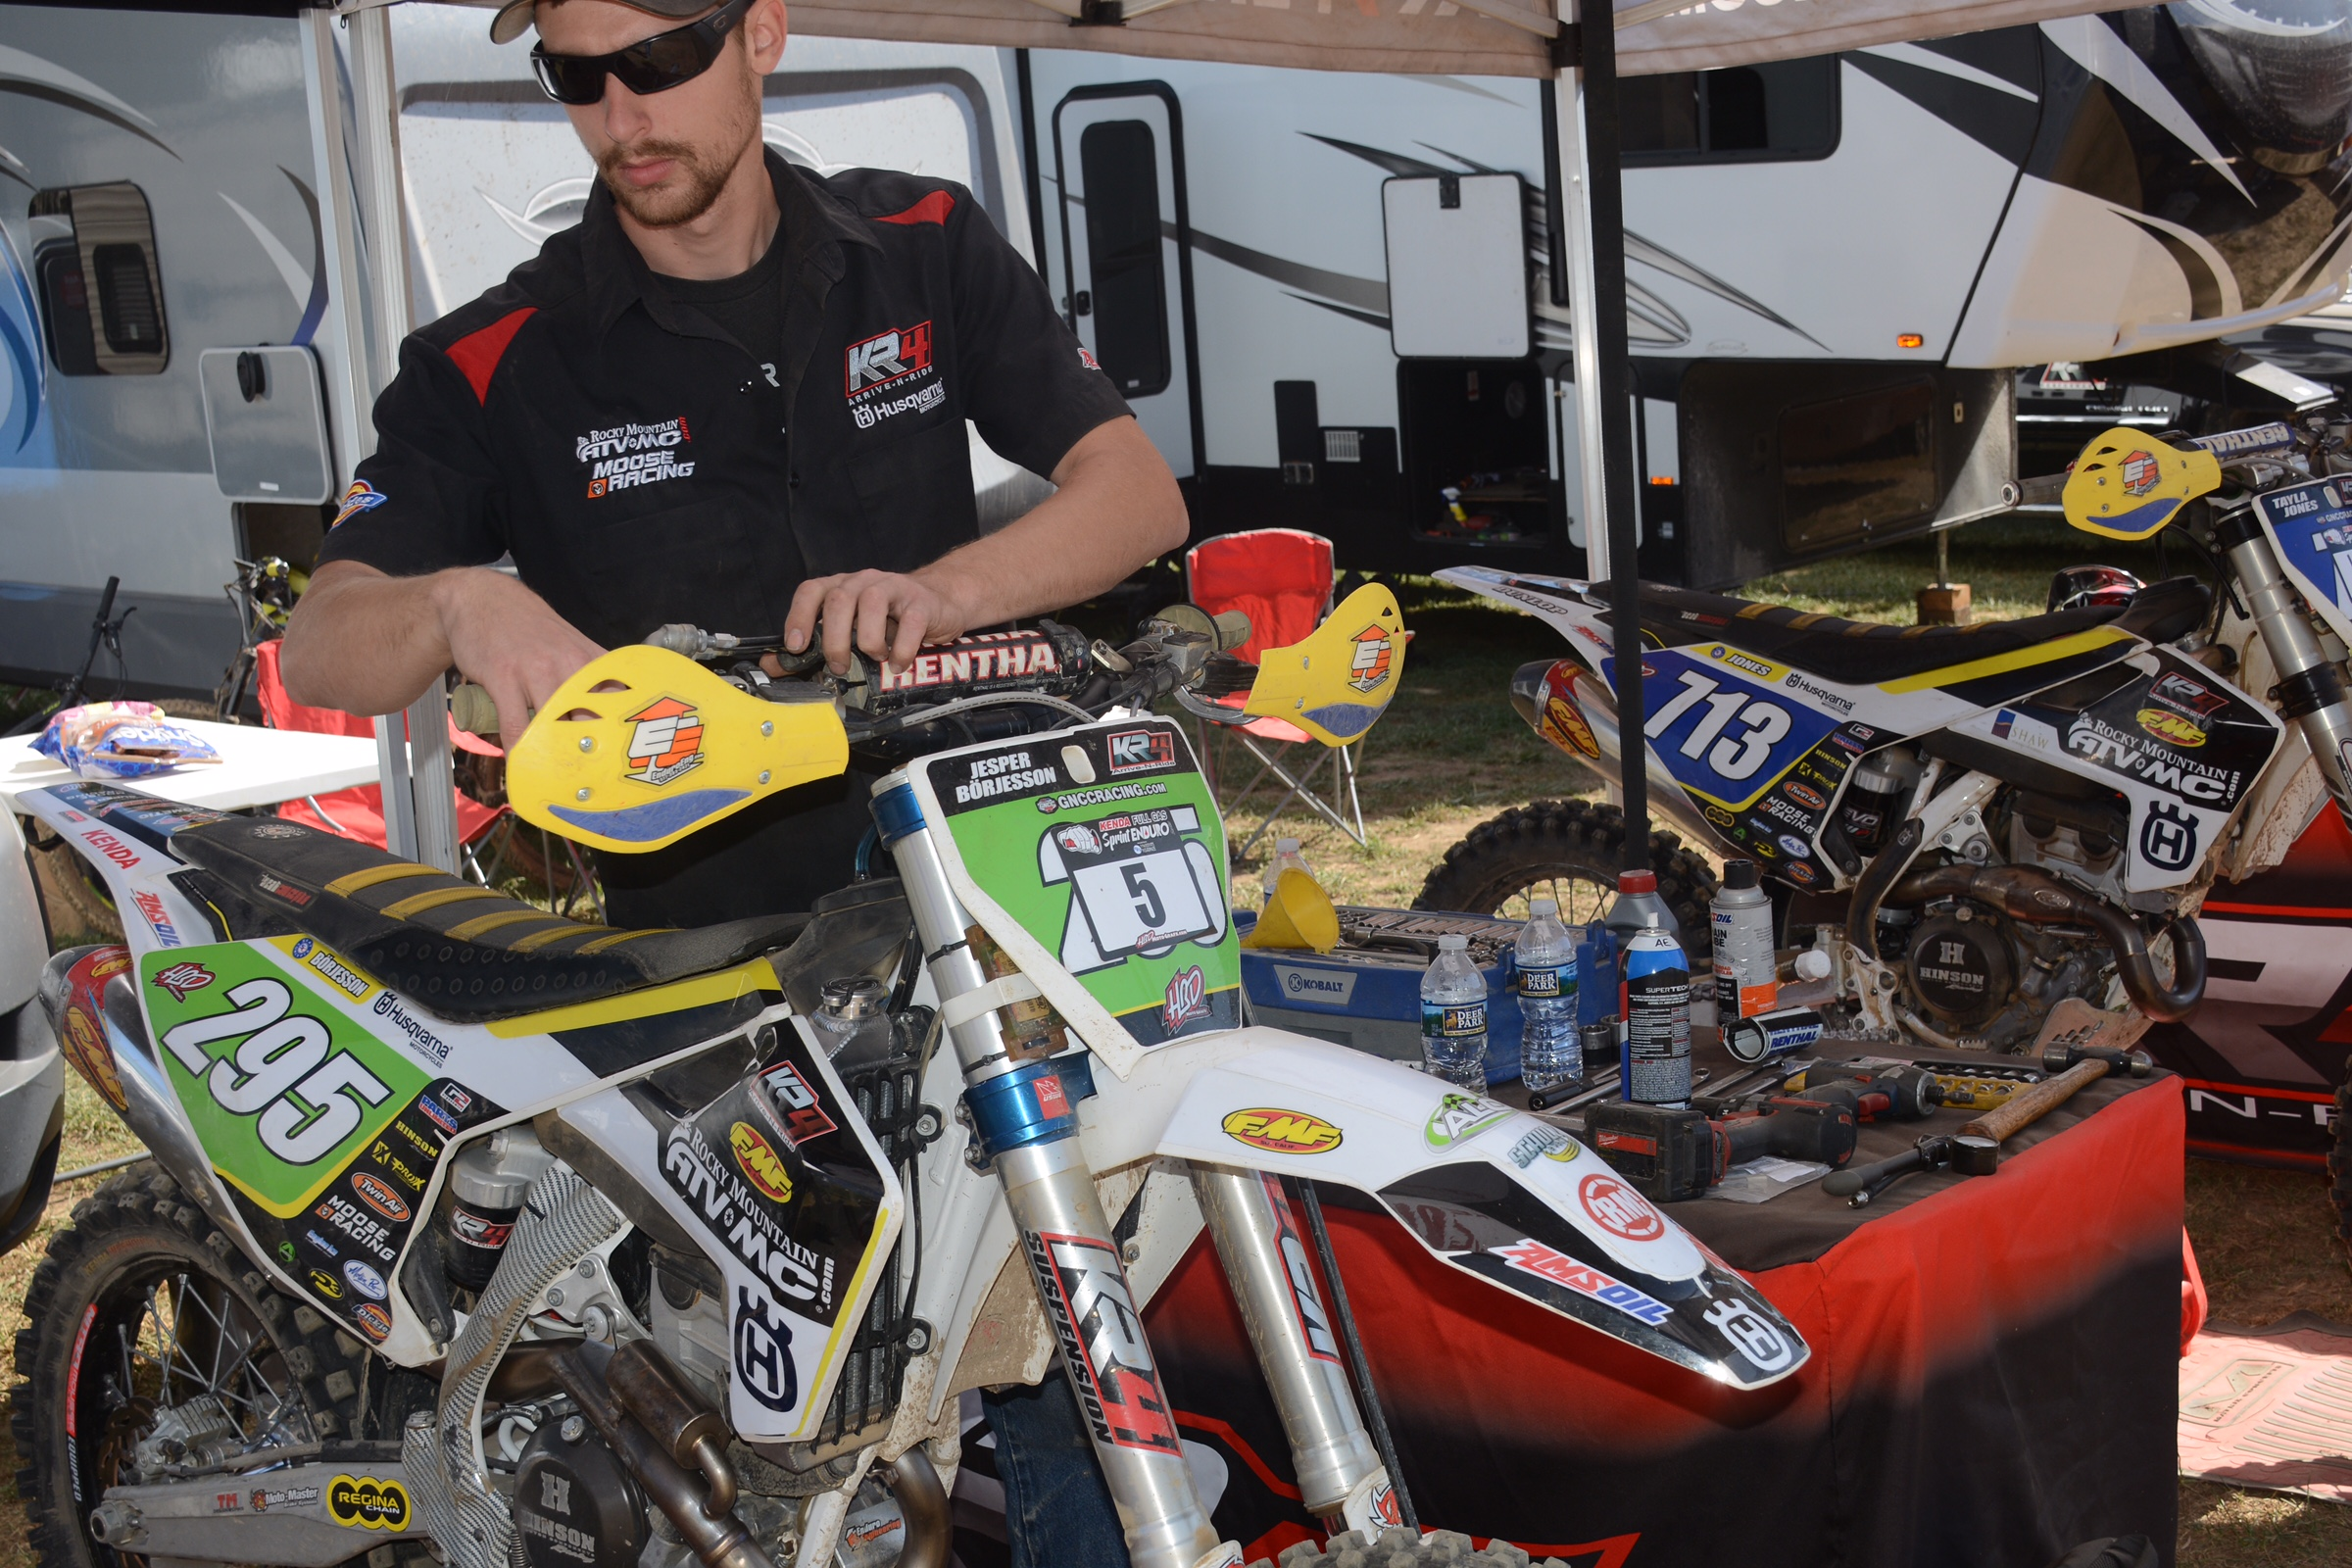 Lead mechanic, Aaron Evans, pulled triple duty this weekend and worked both days helping both Tayla Jones and Jesper Börjesson, along with Mike McLean!